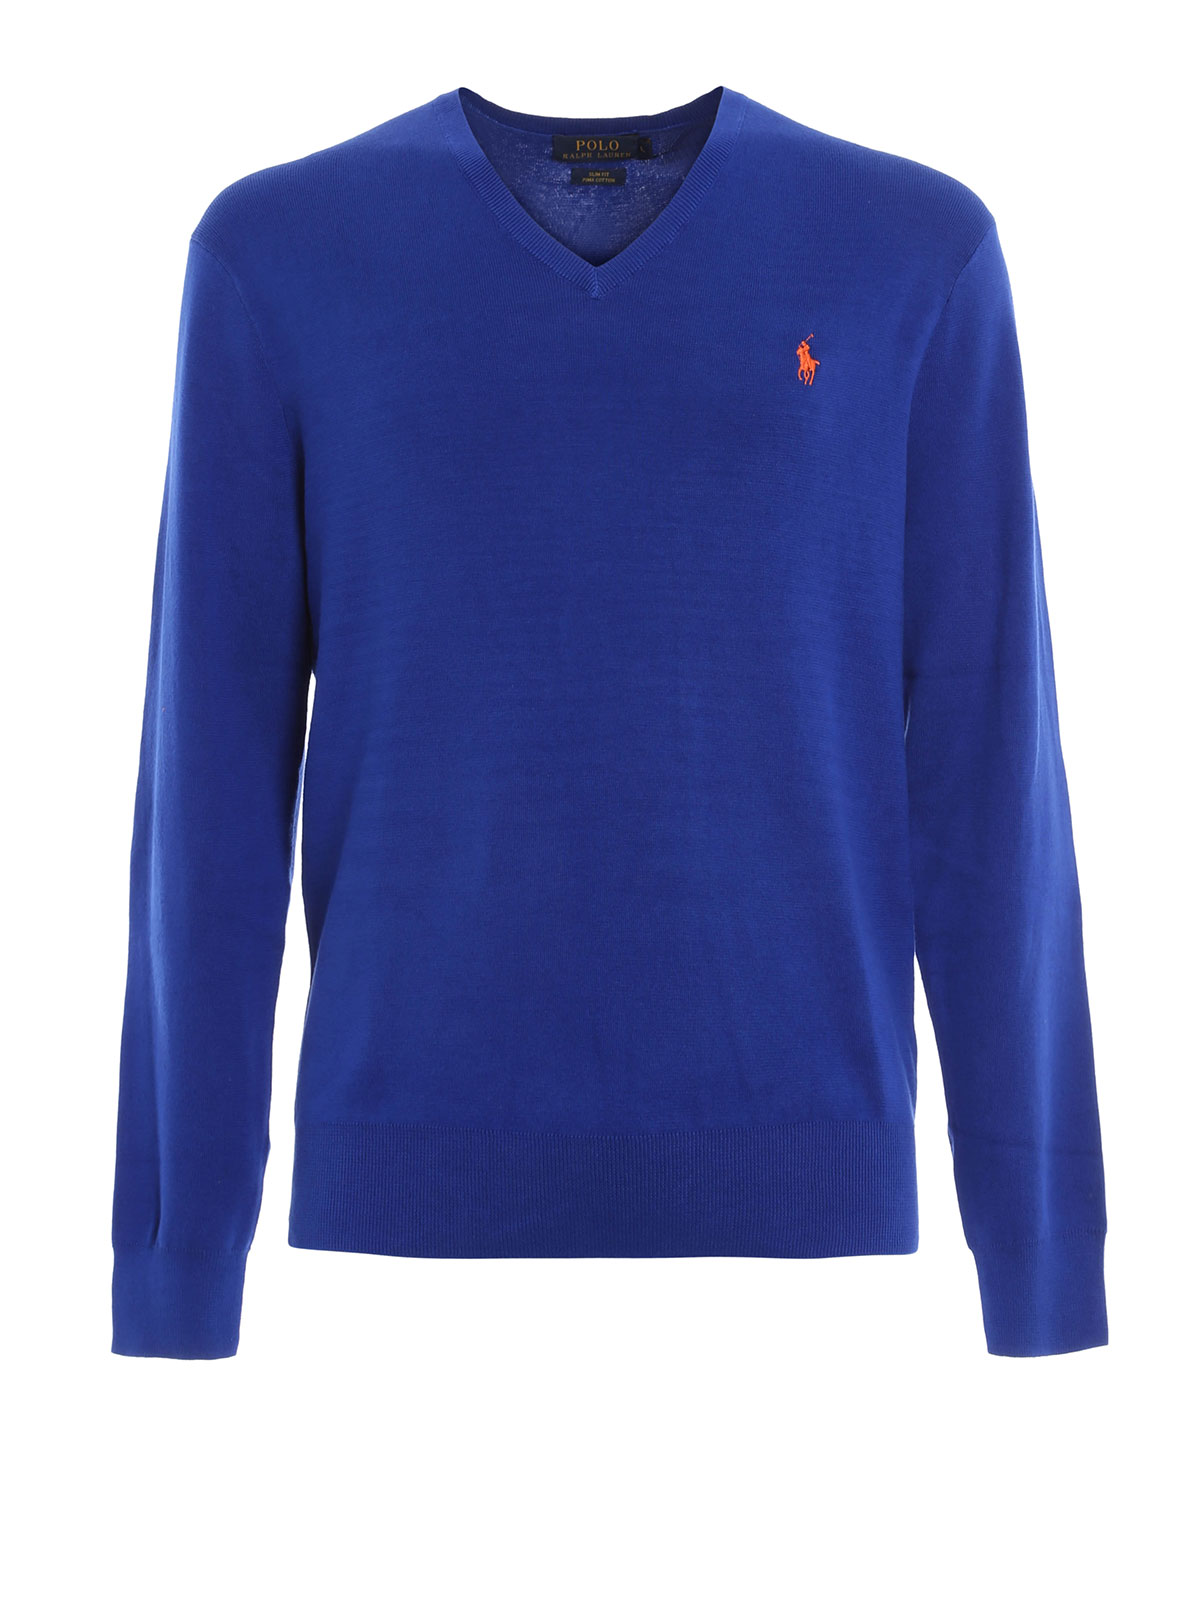 v neck pullover with logo by polo ralph lauren sweatshirts sweaters ikrix. Black Bedroom Furniture Sets. Home Design Ideas